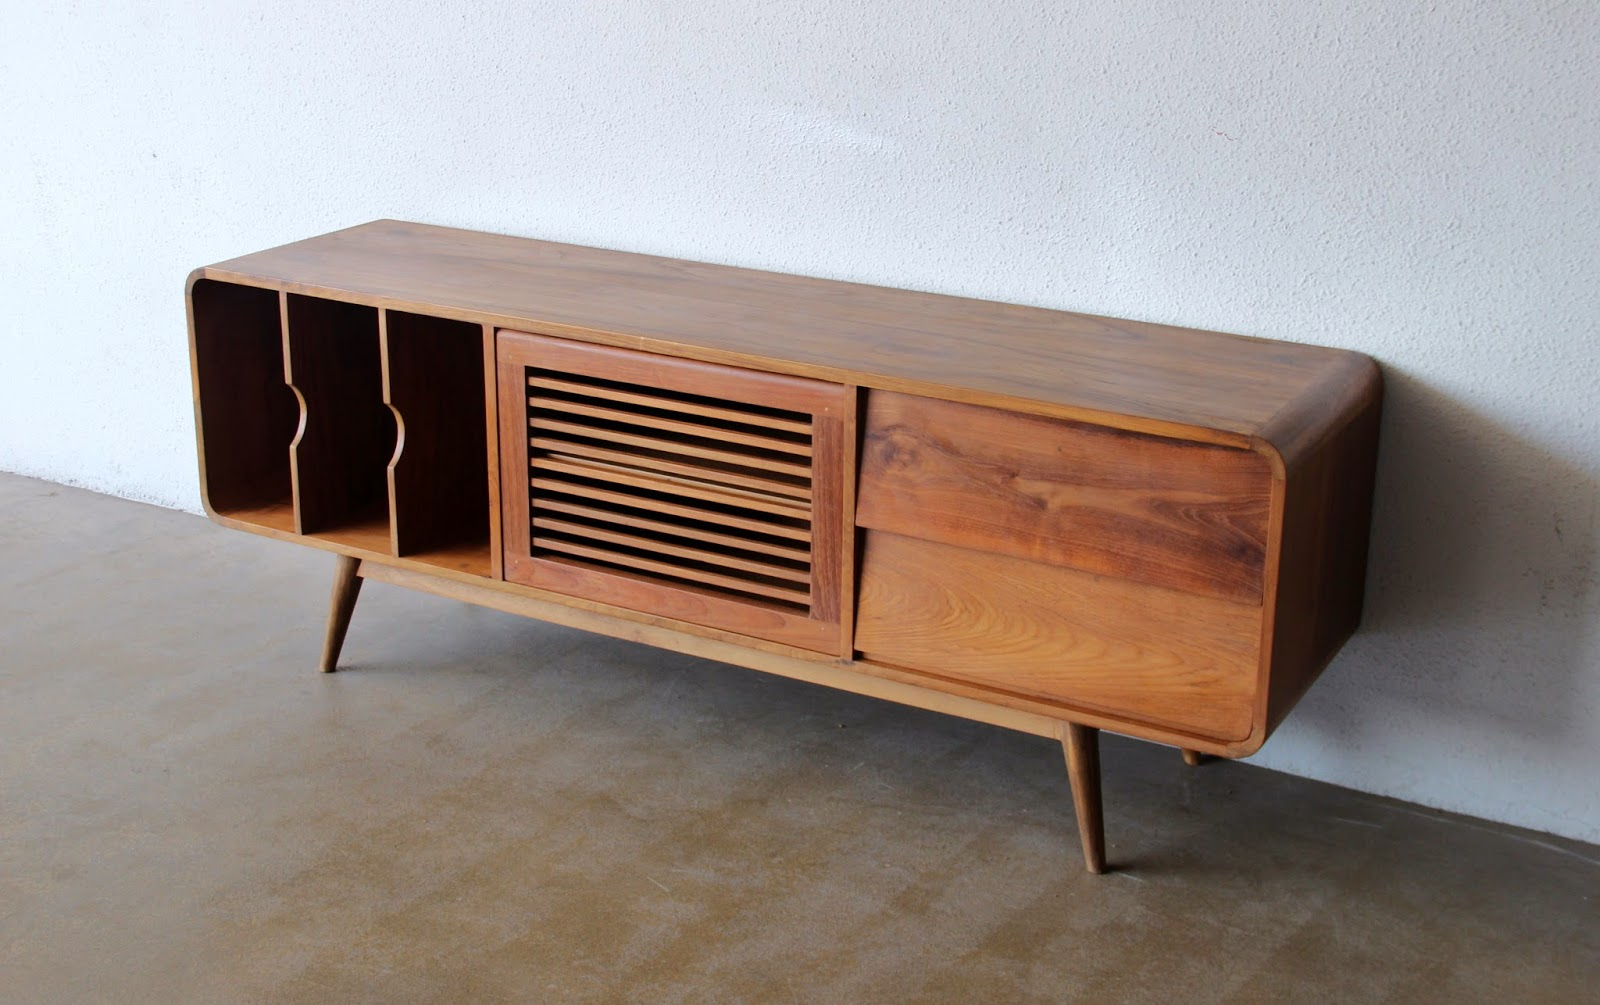 SECOND CHARM FURNITURE